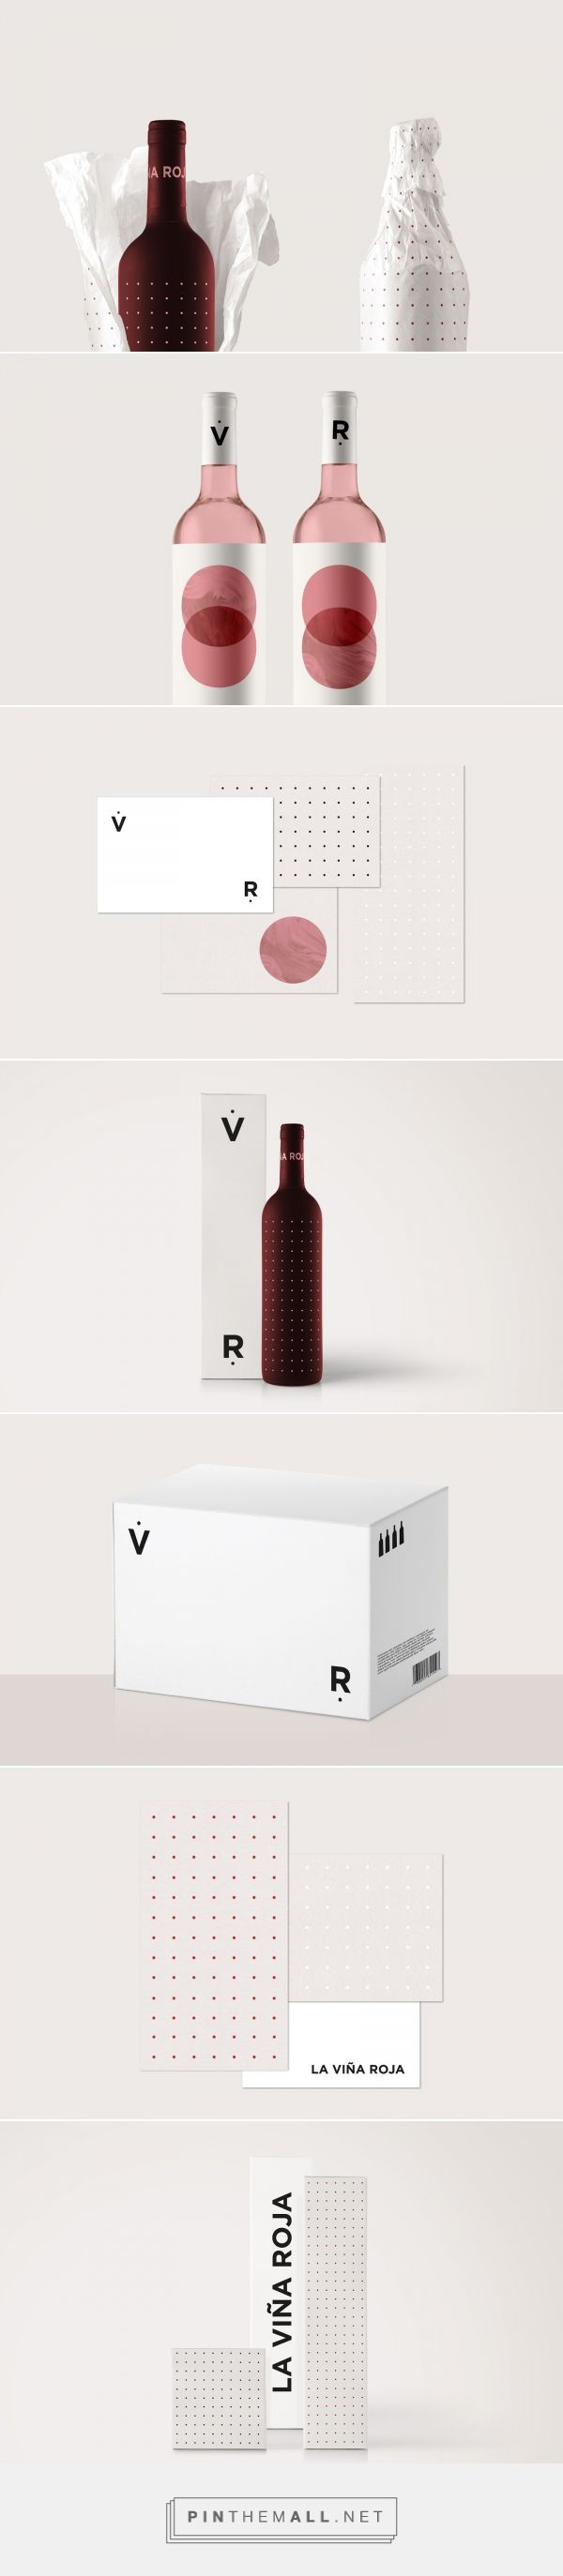 La Viña Roja (Concept) - Packaging of the World - Creative Package Design Gallery - http://www.packagingoftheworld.com/2017/01/la-vina-roja.html